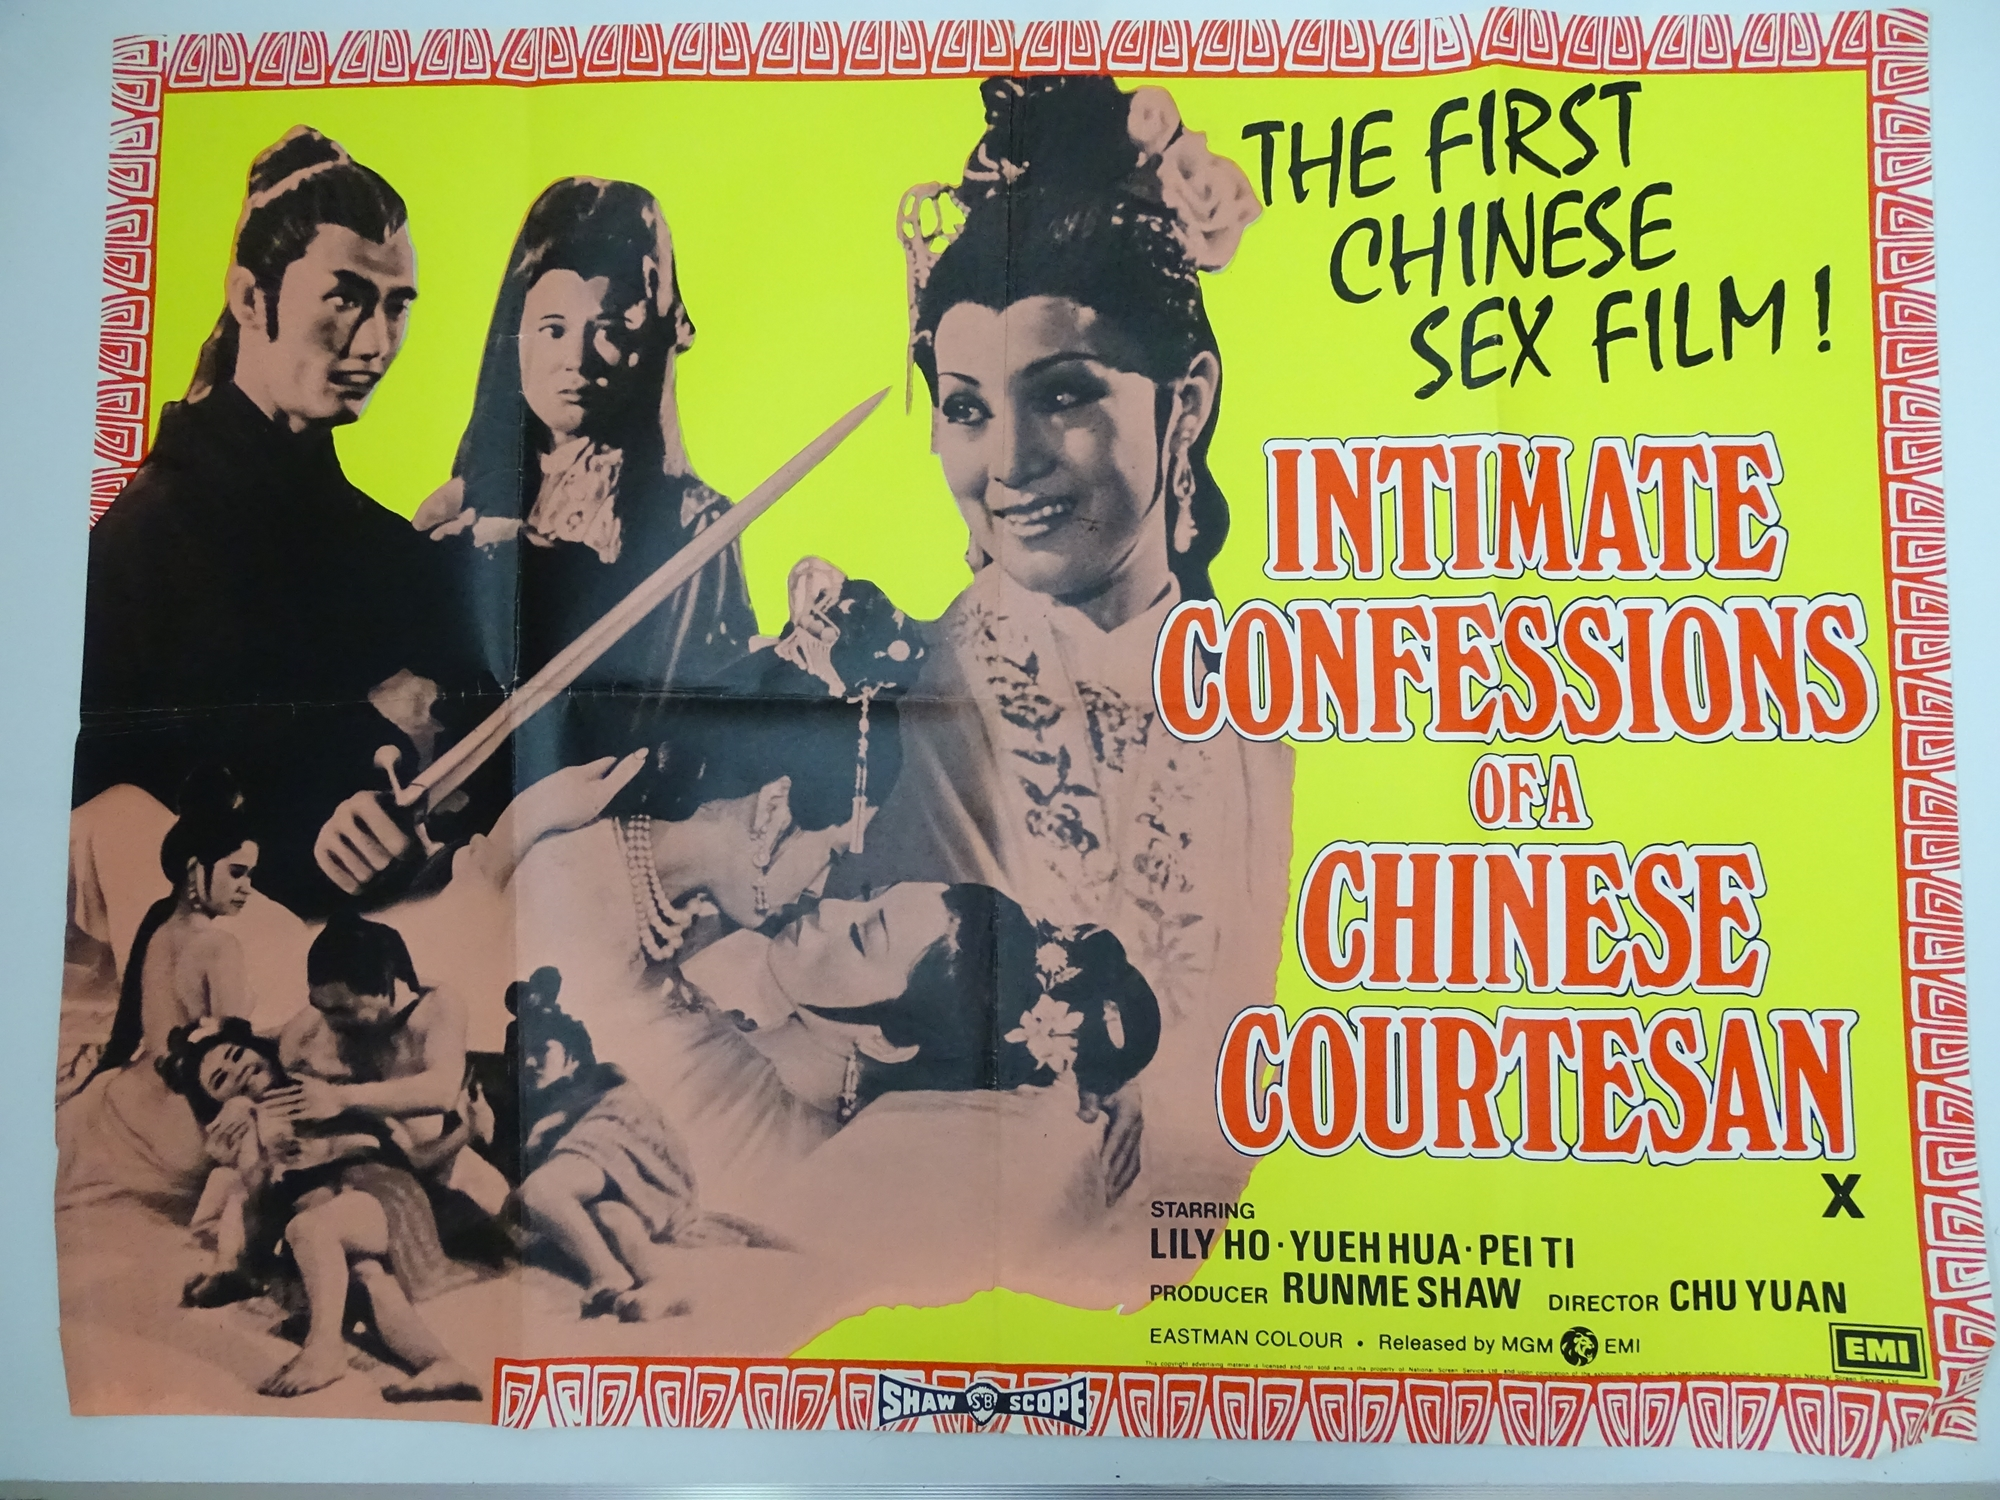 Selection of UK Quad Film Posters: NAUGHTY KNICKERS; FEMALE SEXUALITY; CONFESSIONS OF A MALE ESCORT; - Image 7 of 10